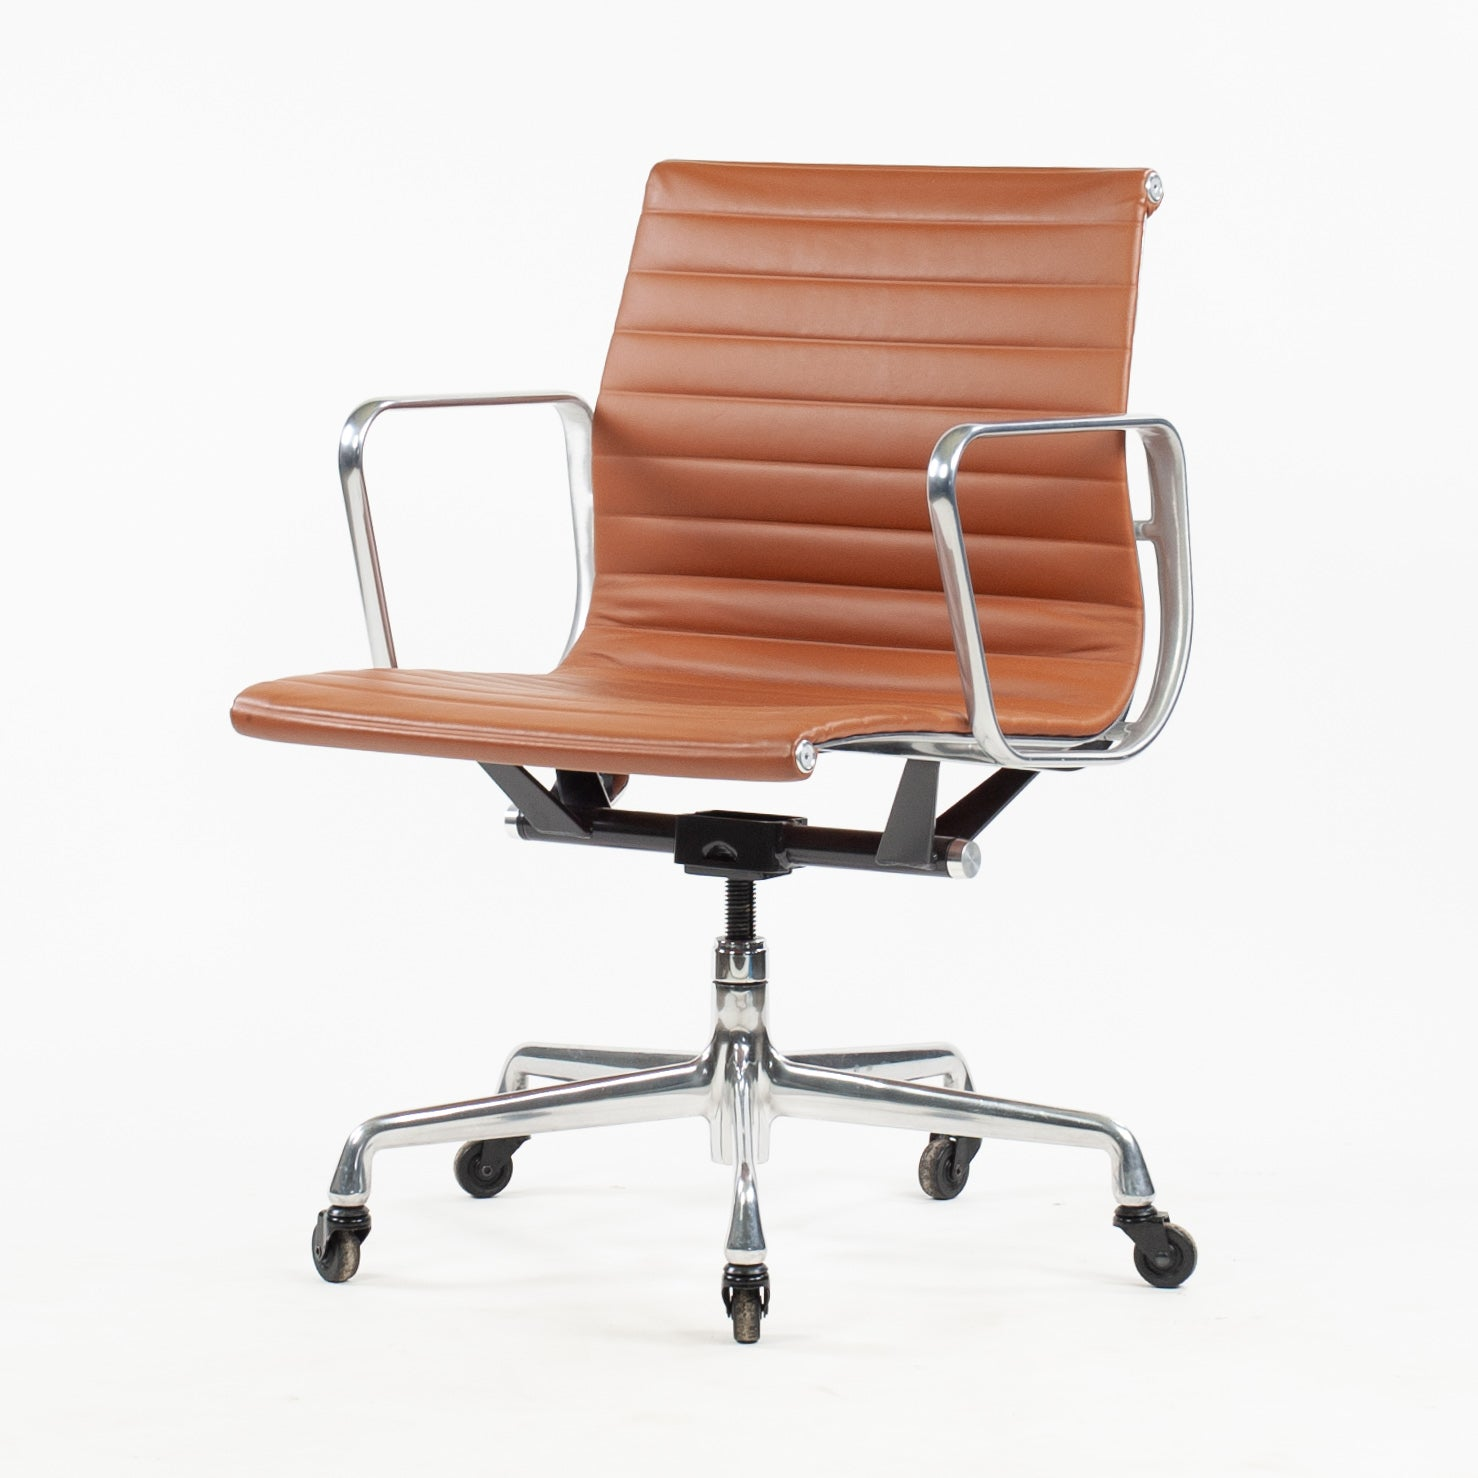 SOLD Herman Miller Eames Low Aluminum Group Management Desk Chair Cognac Leather 2010